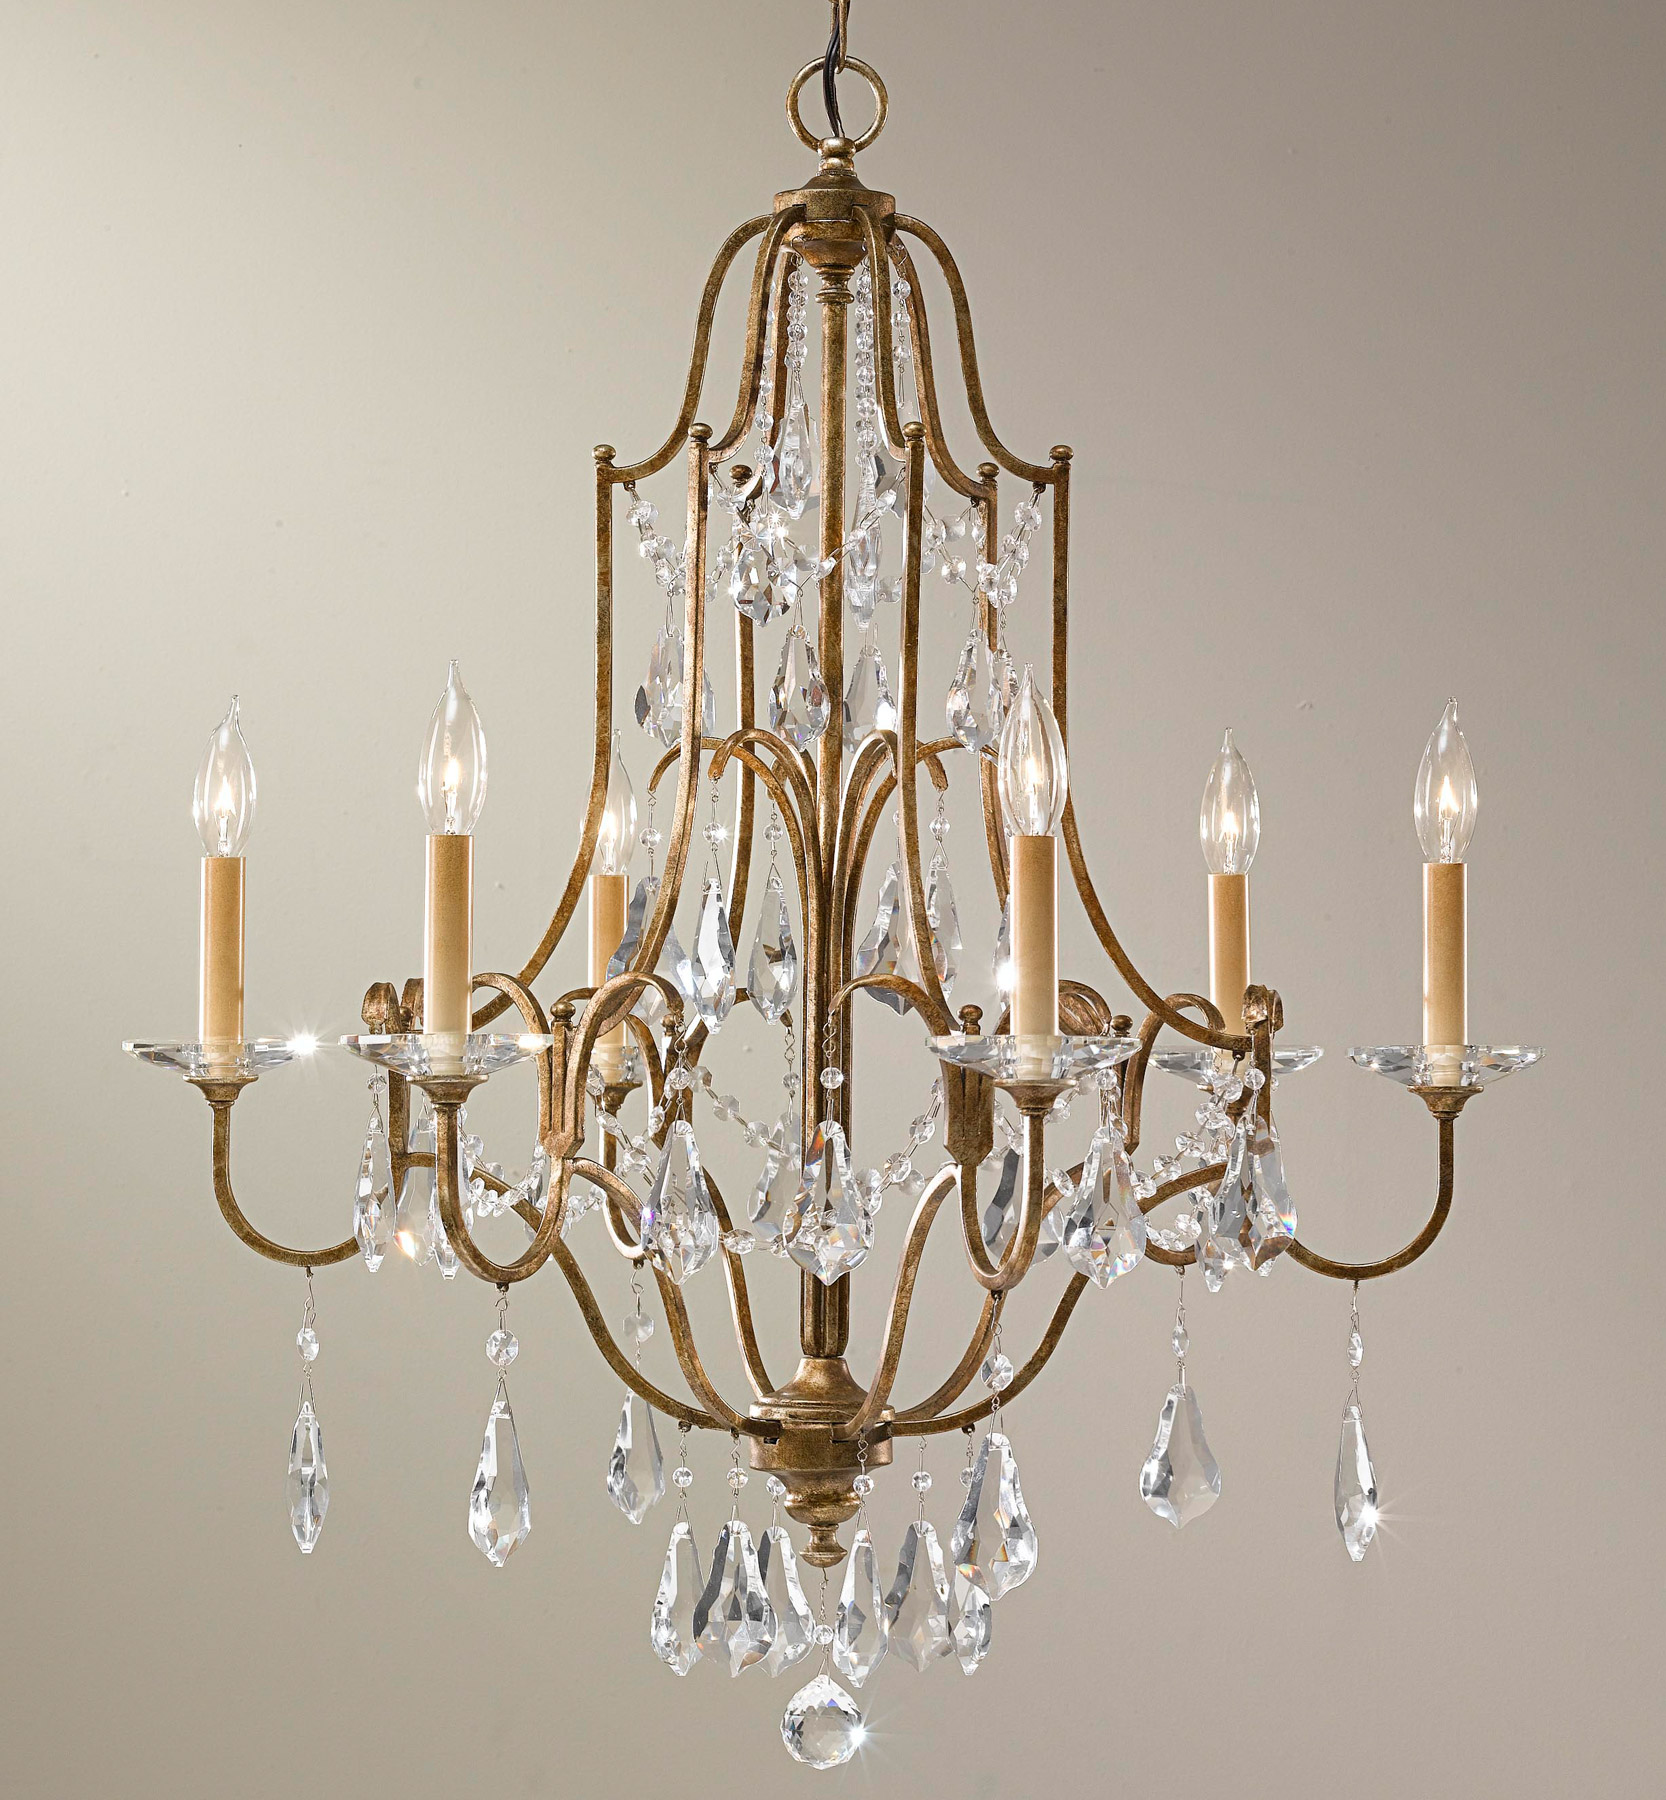 Feiss f24786obz crystal valentina six light chandelier murray feiss f24786obz crystal valentina six light chandelier mozeypictures Image collections